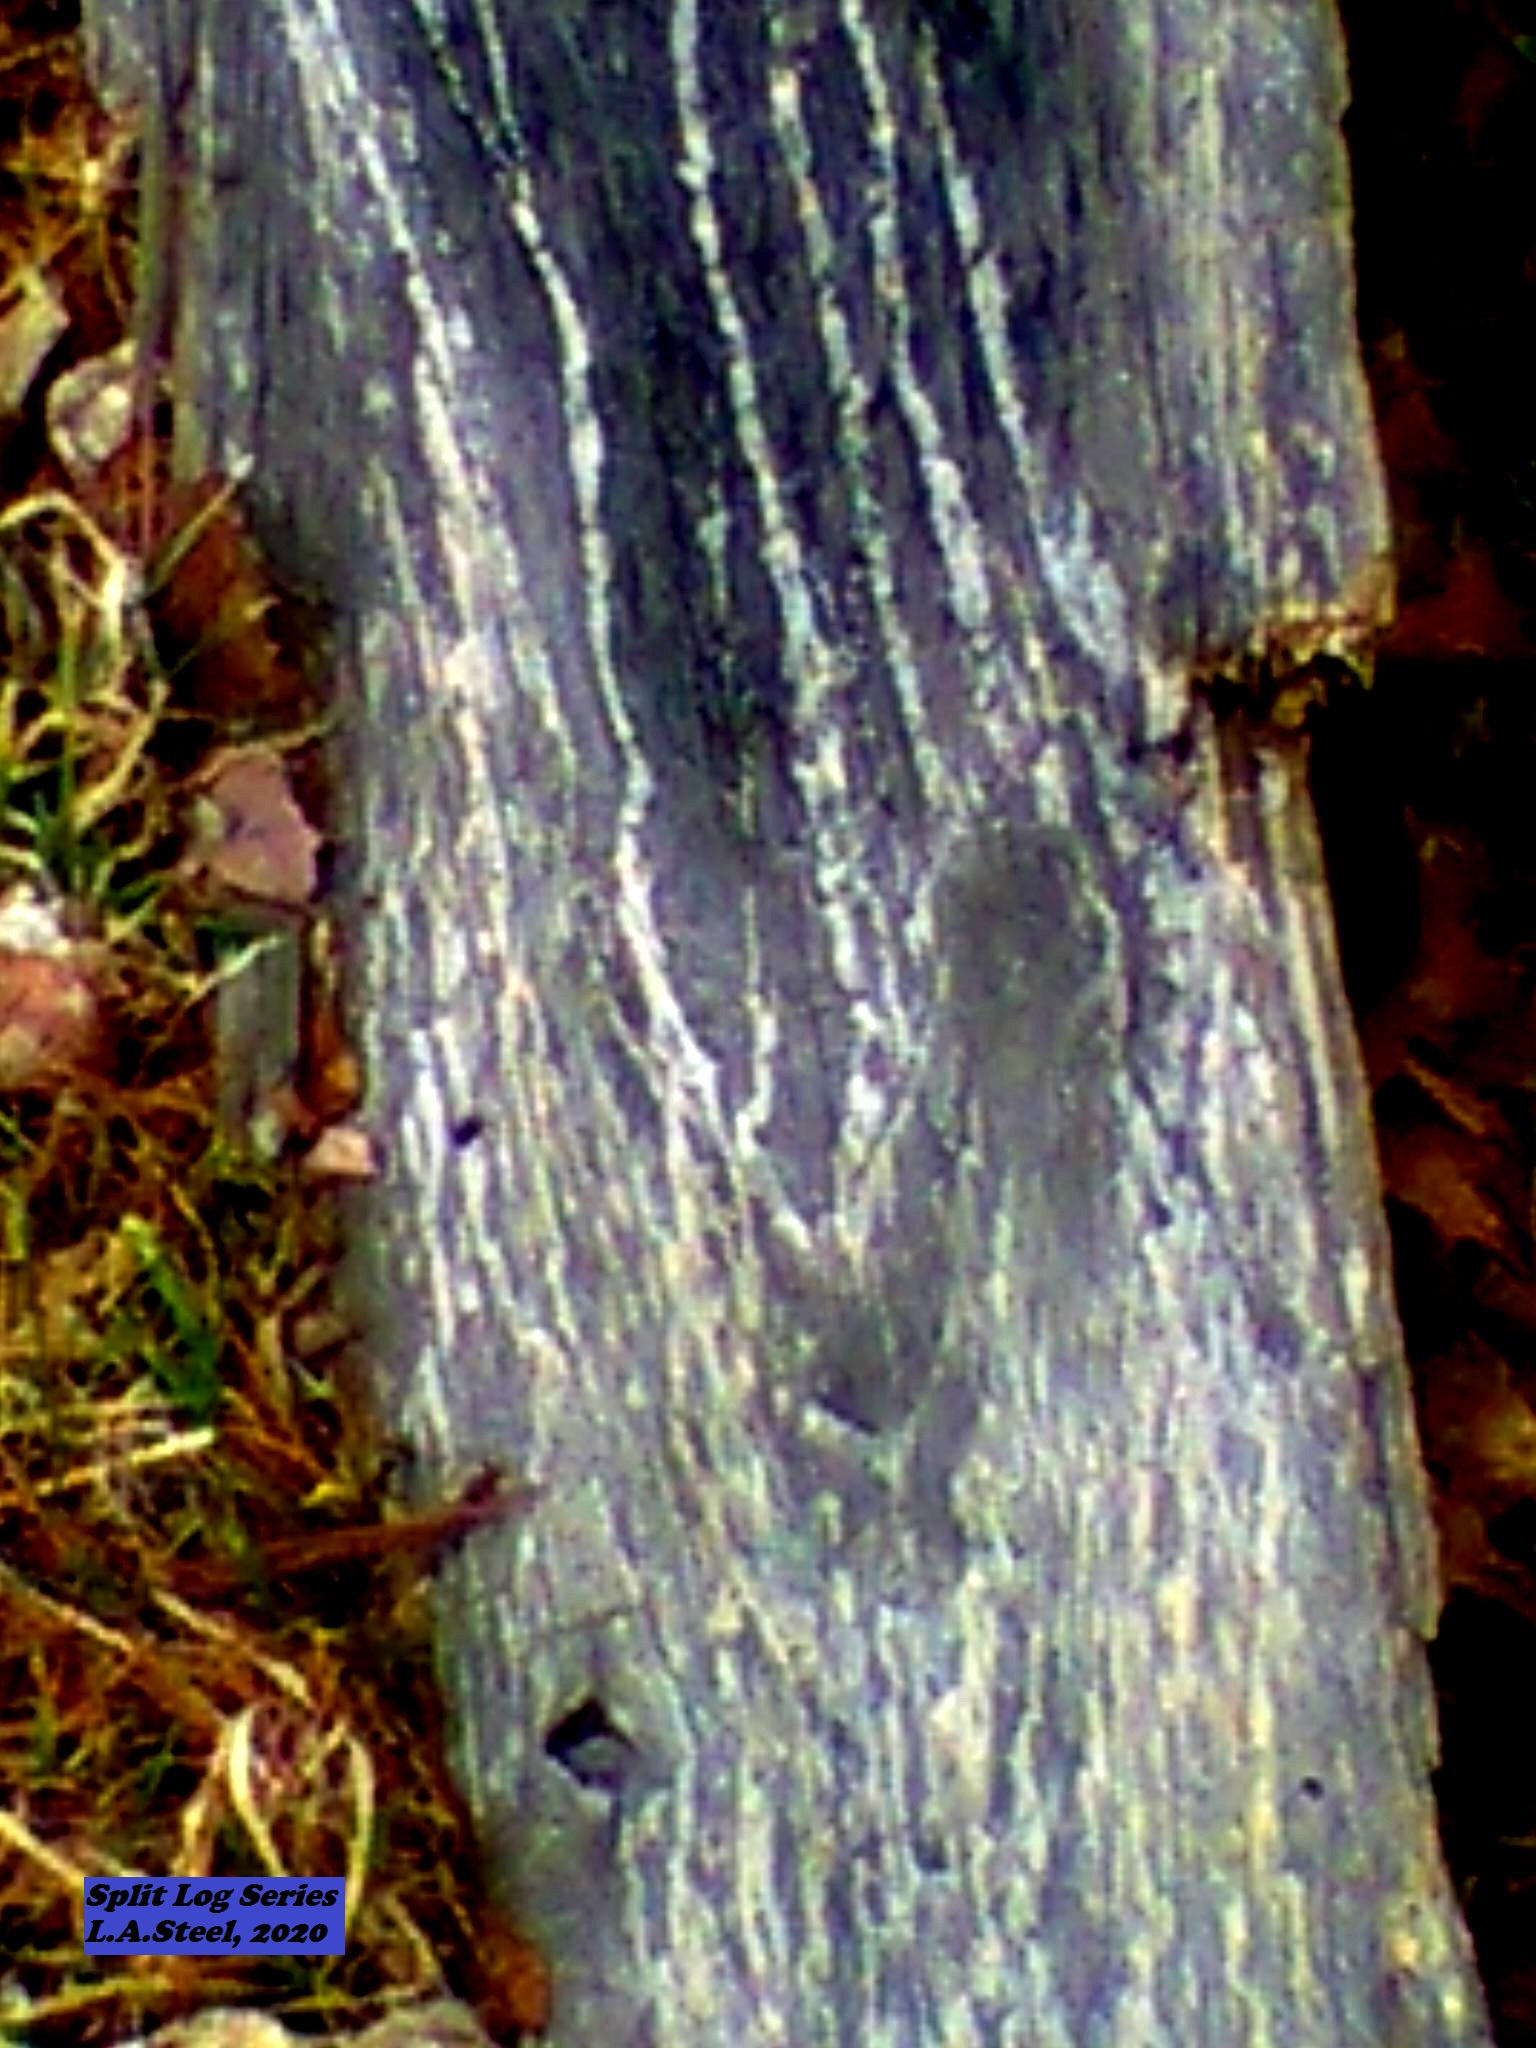 split log series 4 2020